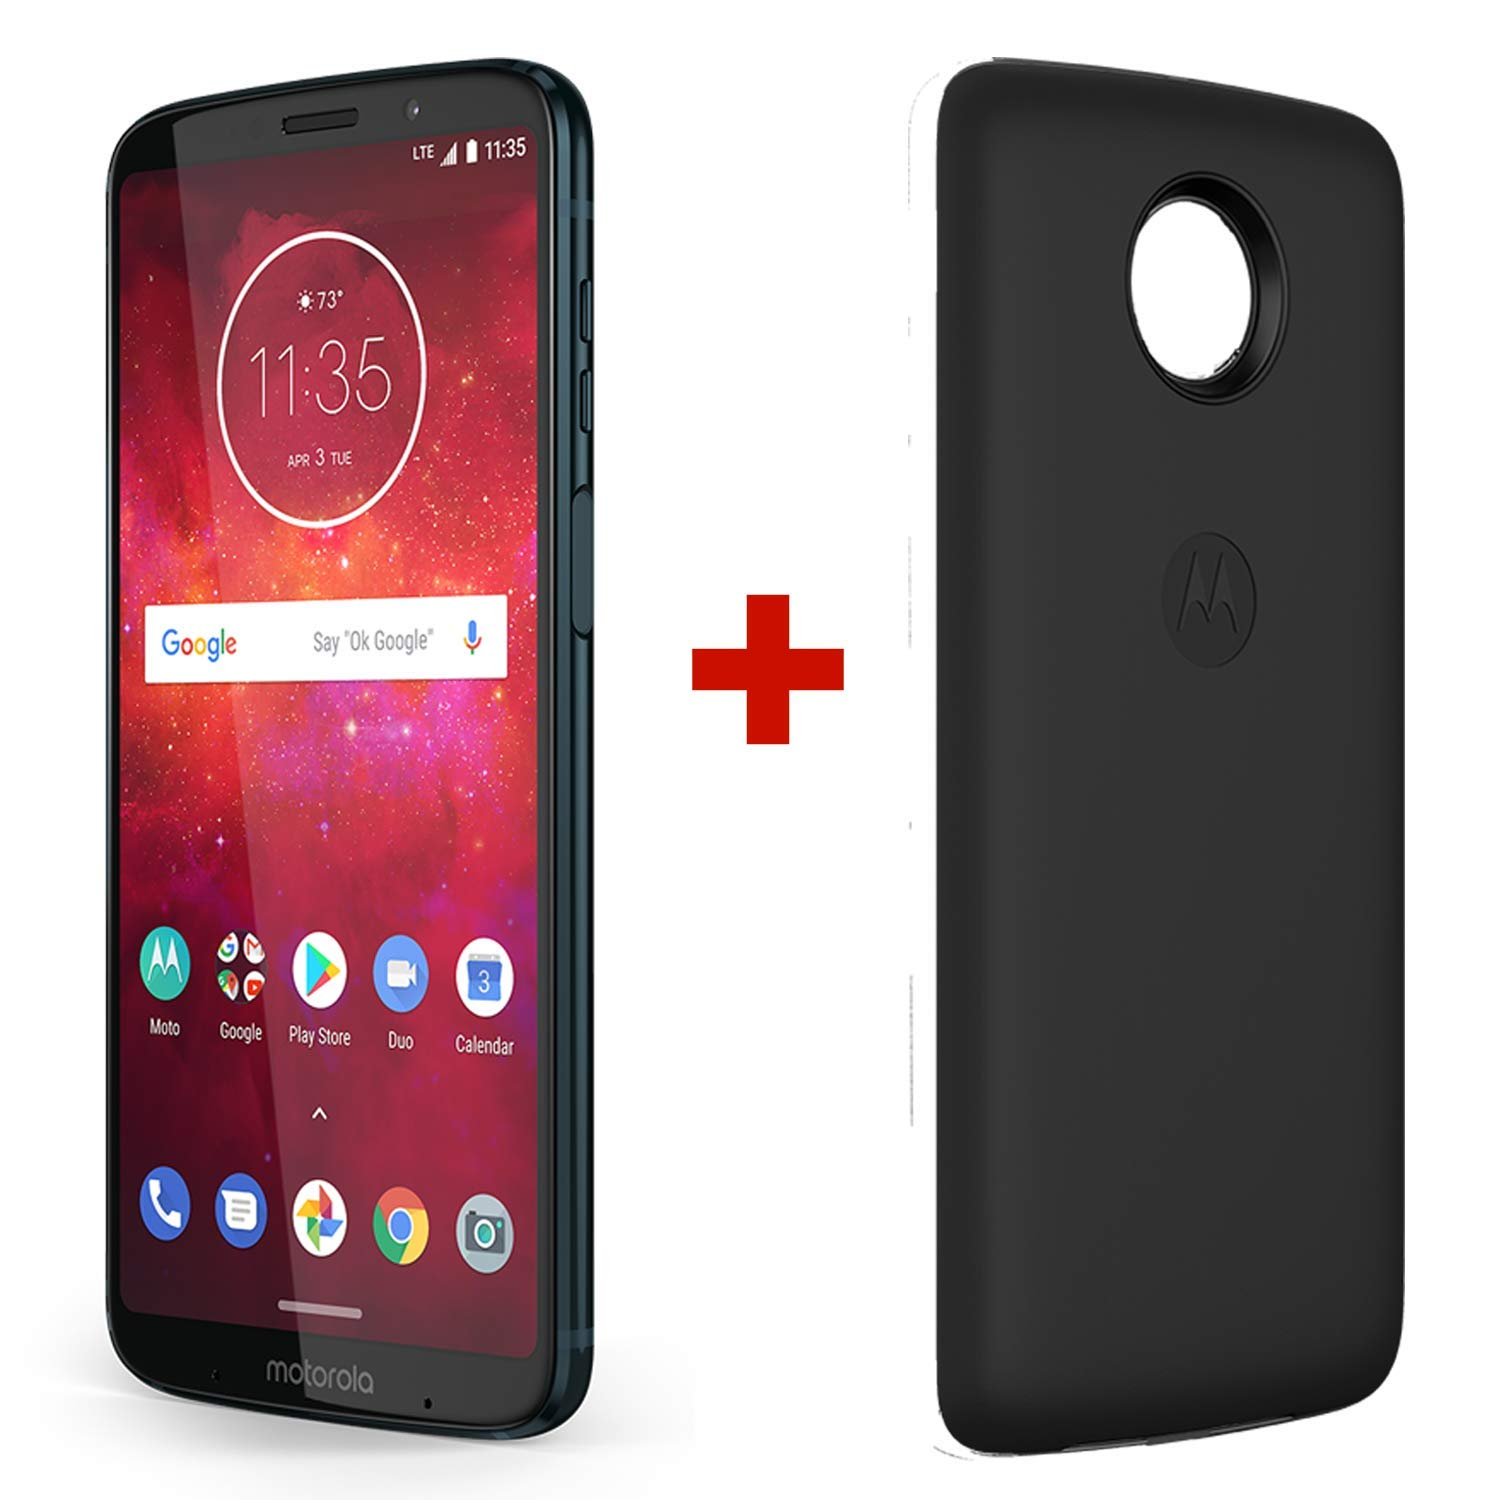 motorola-z3-play-moto-power-pack-unlocked-attsprintt-mobileverizon-64gb-deep-indigo-us-warranty-pa9s0000us